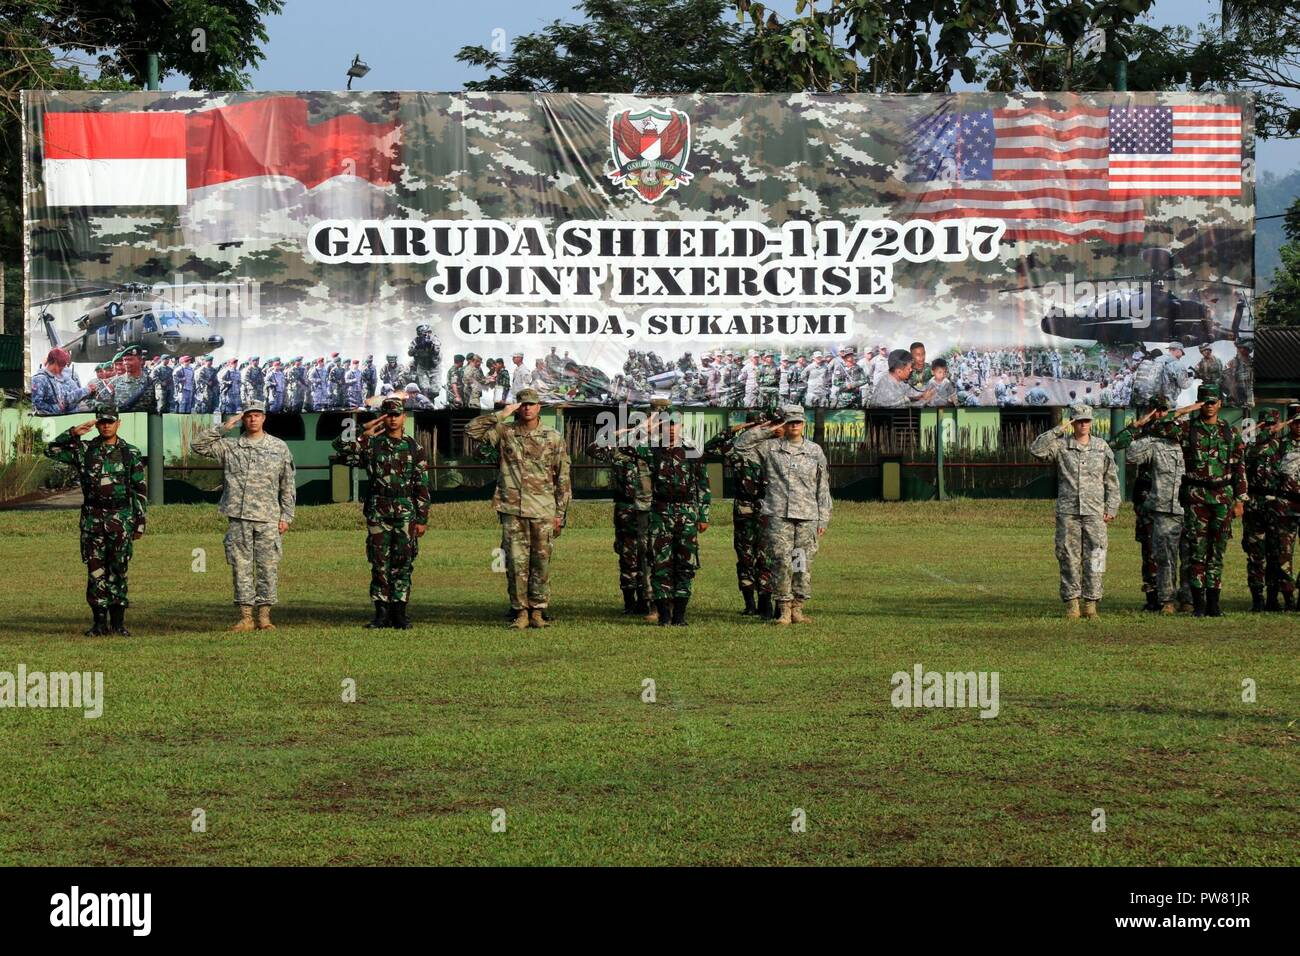 Cibenda Indonesia Sol Rs With The Tentara Nasional Indonesia Army Tni Ad And U S Army Stood Side By Side On A Parade Field During The Closing